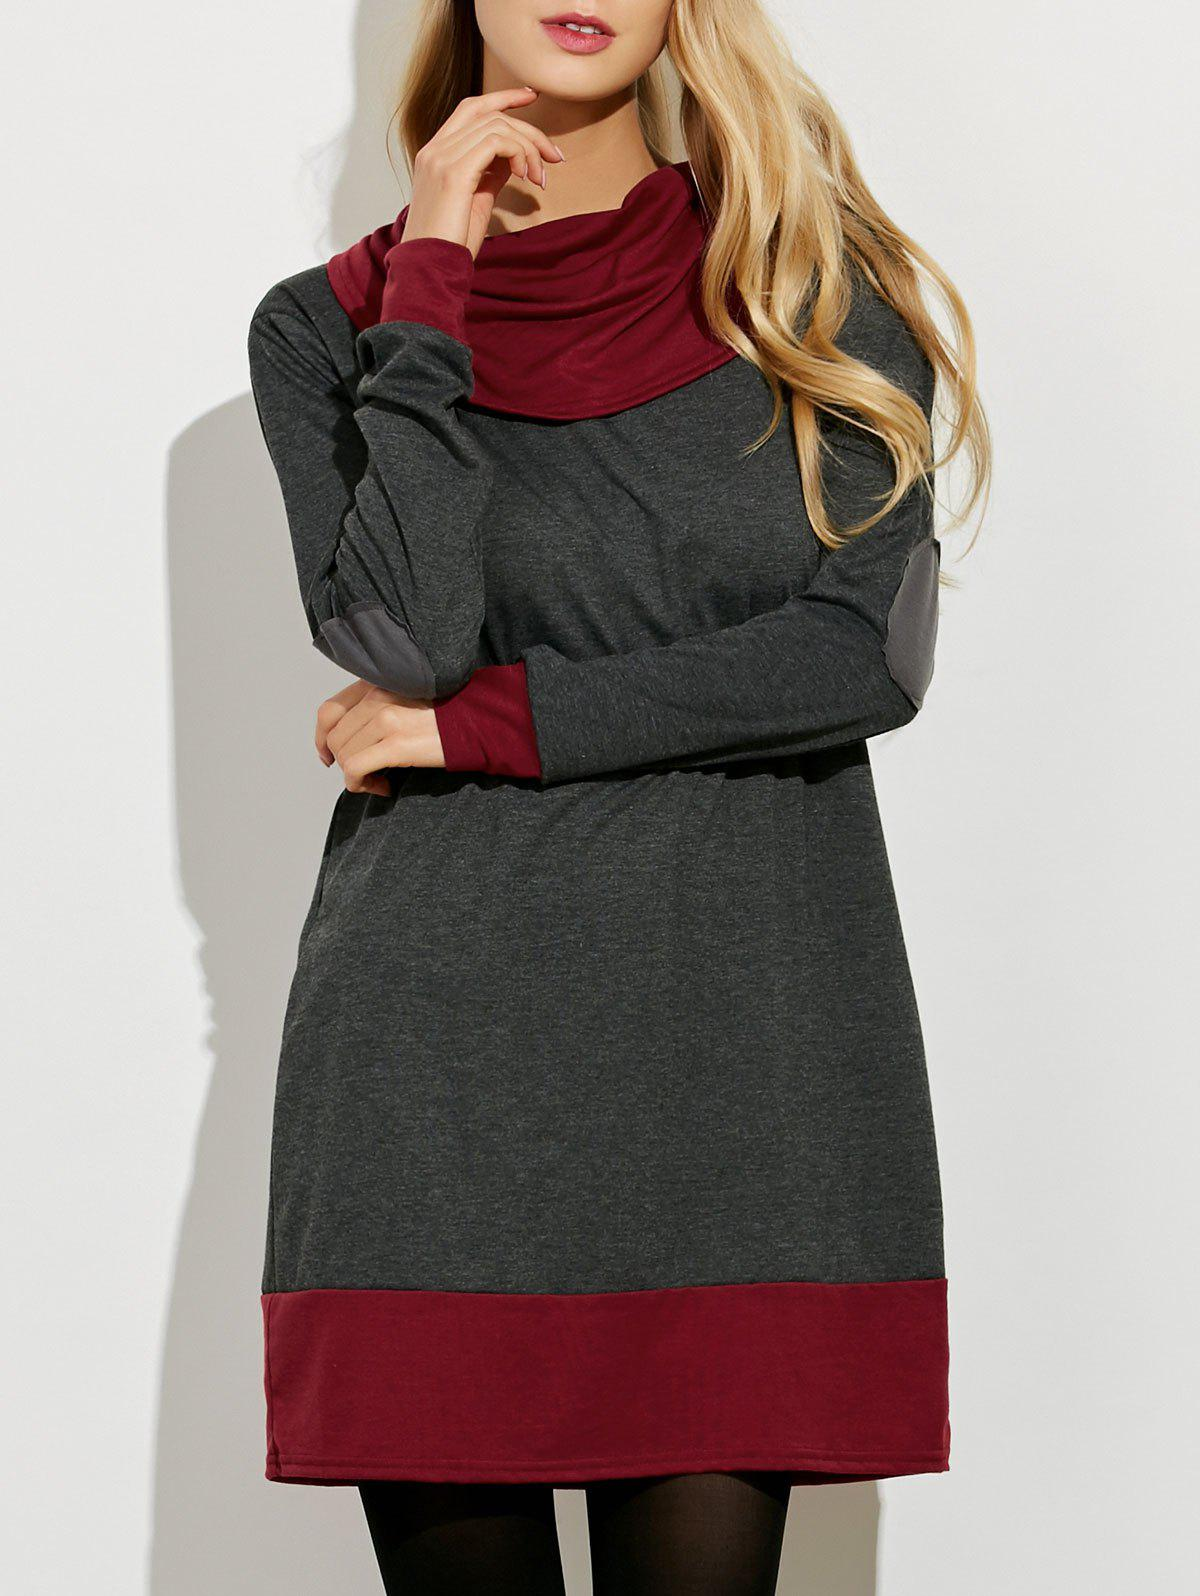 Cowl Neck Color Block Mini Dress - GRAY/RED M